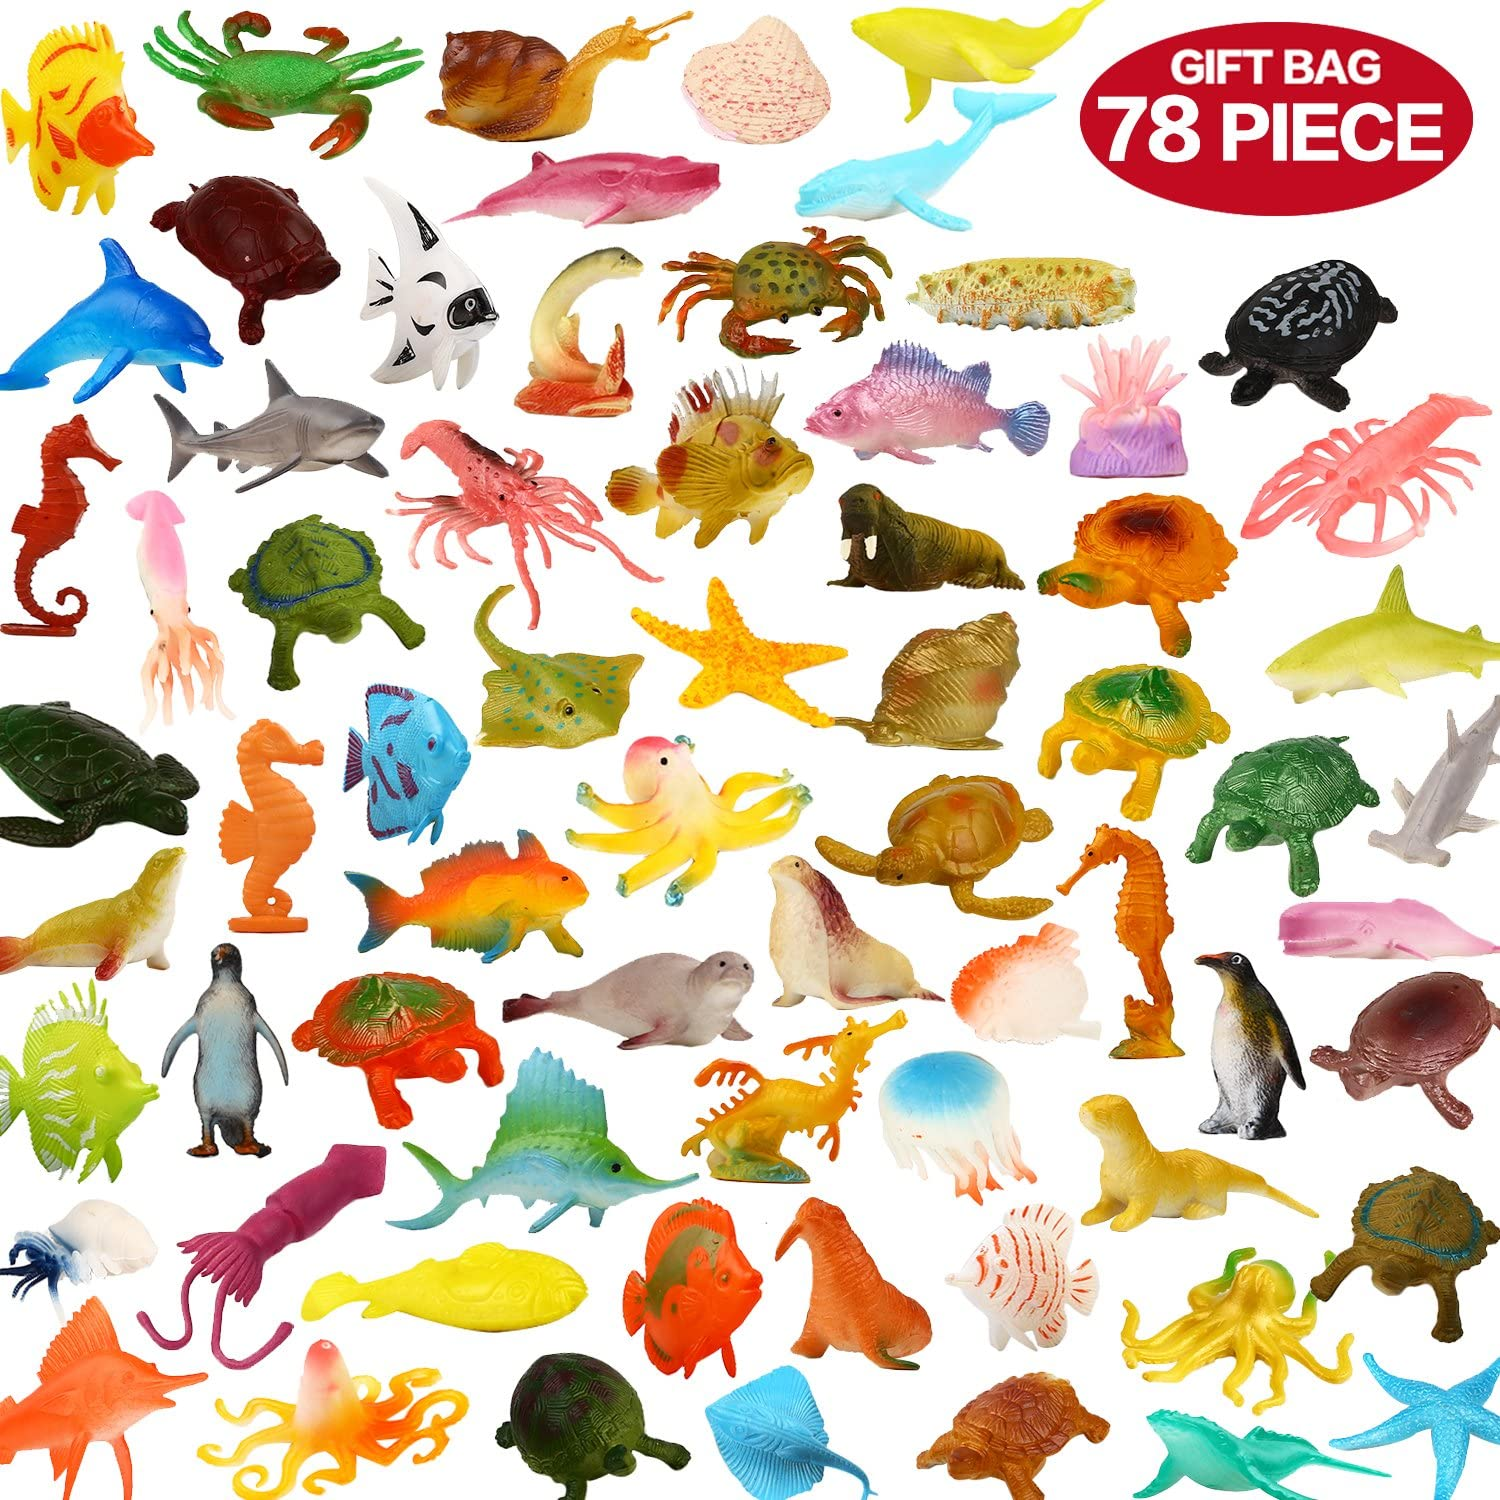 20 Piece Ocean Animal /& Plant Toy Set Brand New!